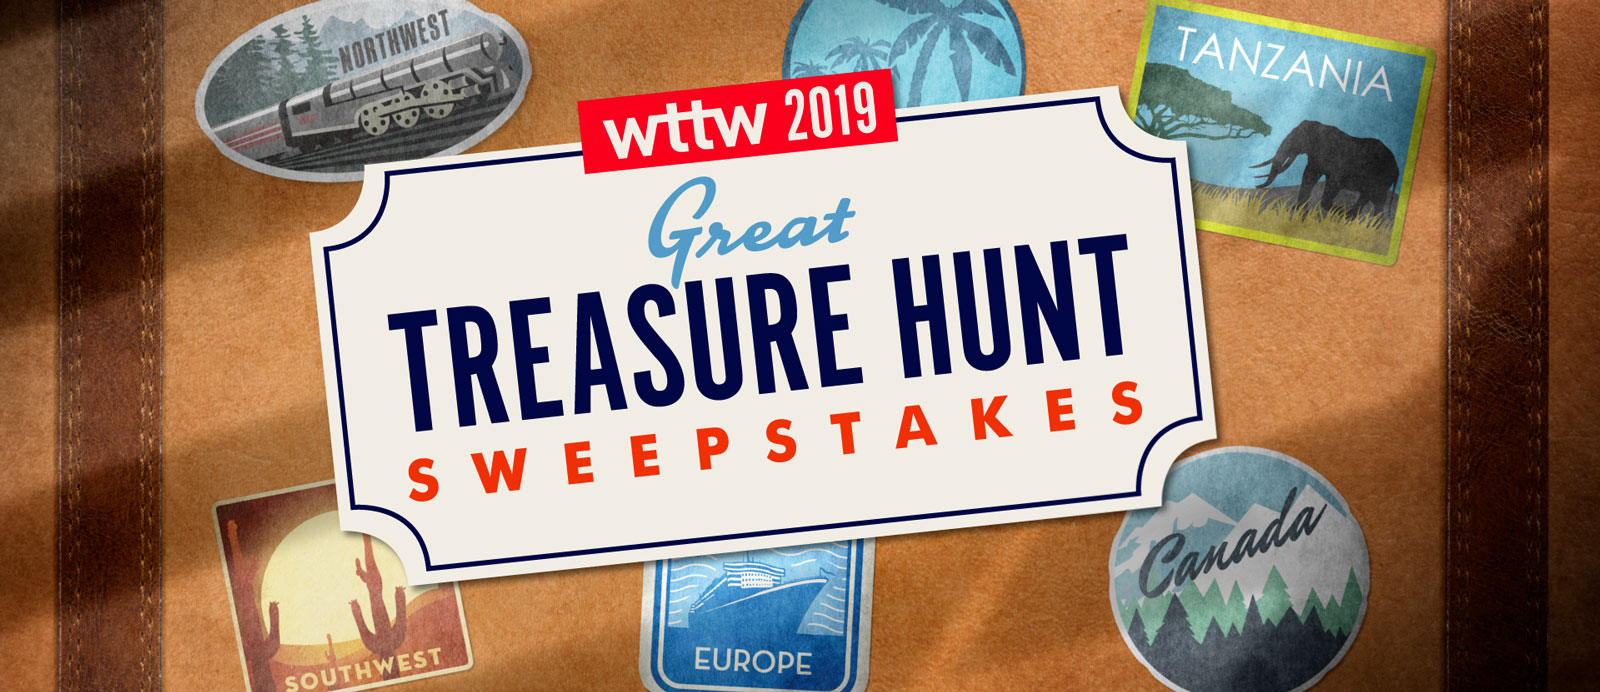 WTTW Great Treasure Hunt Sweepstakes | WTTW Chicago